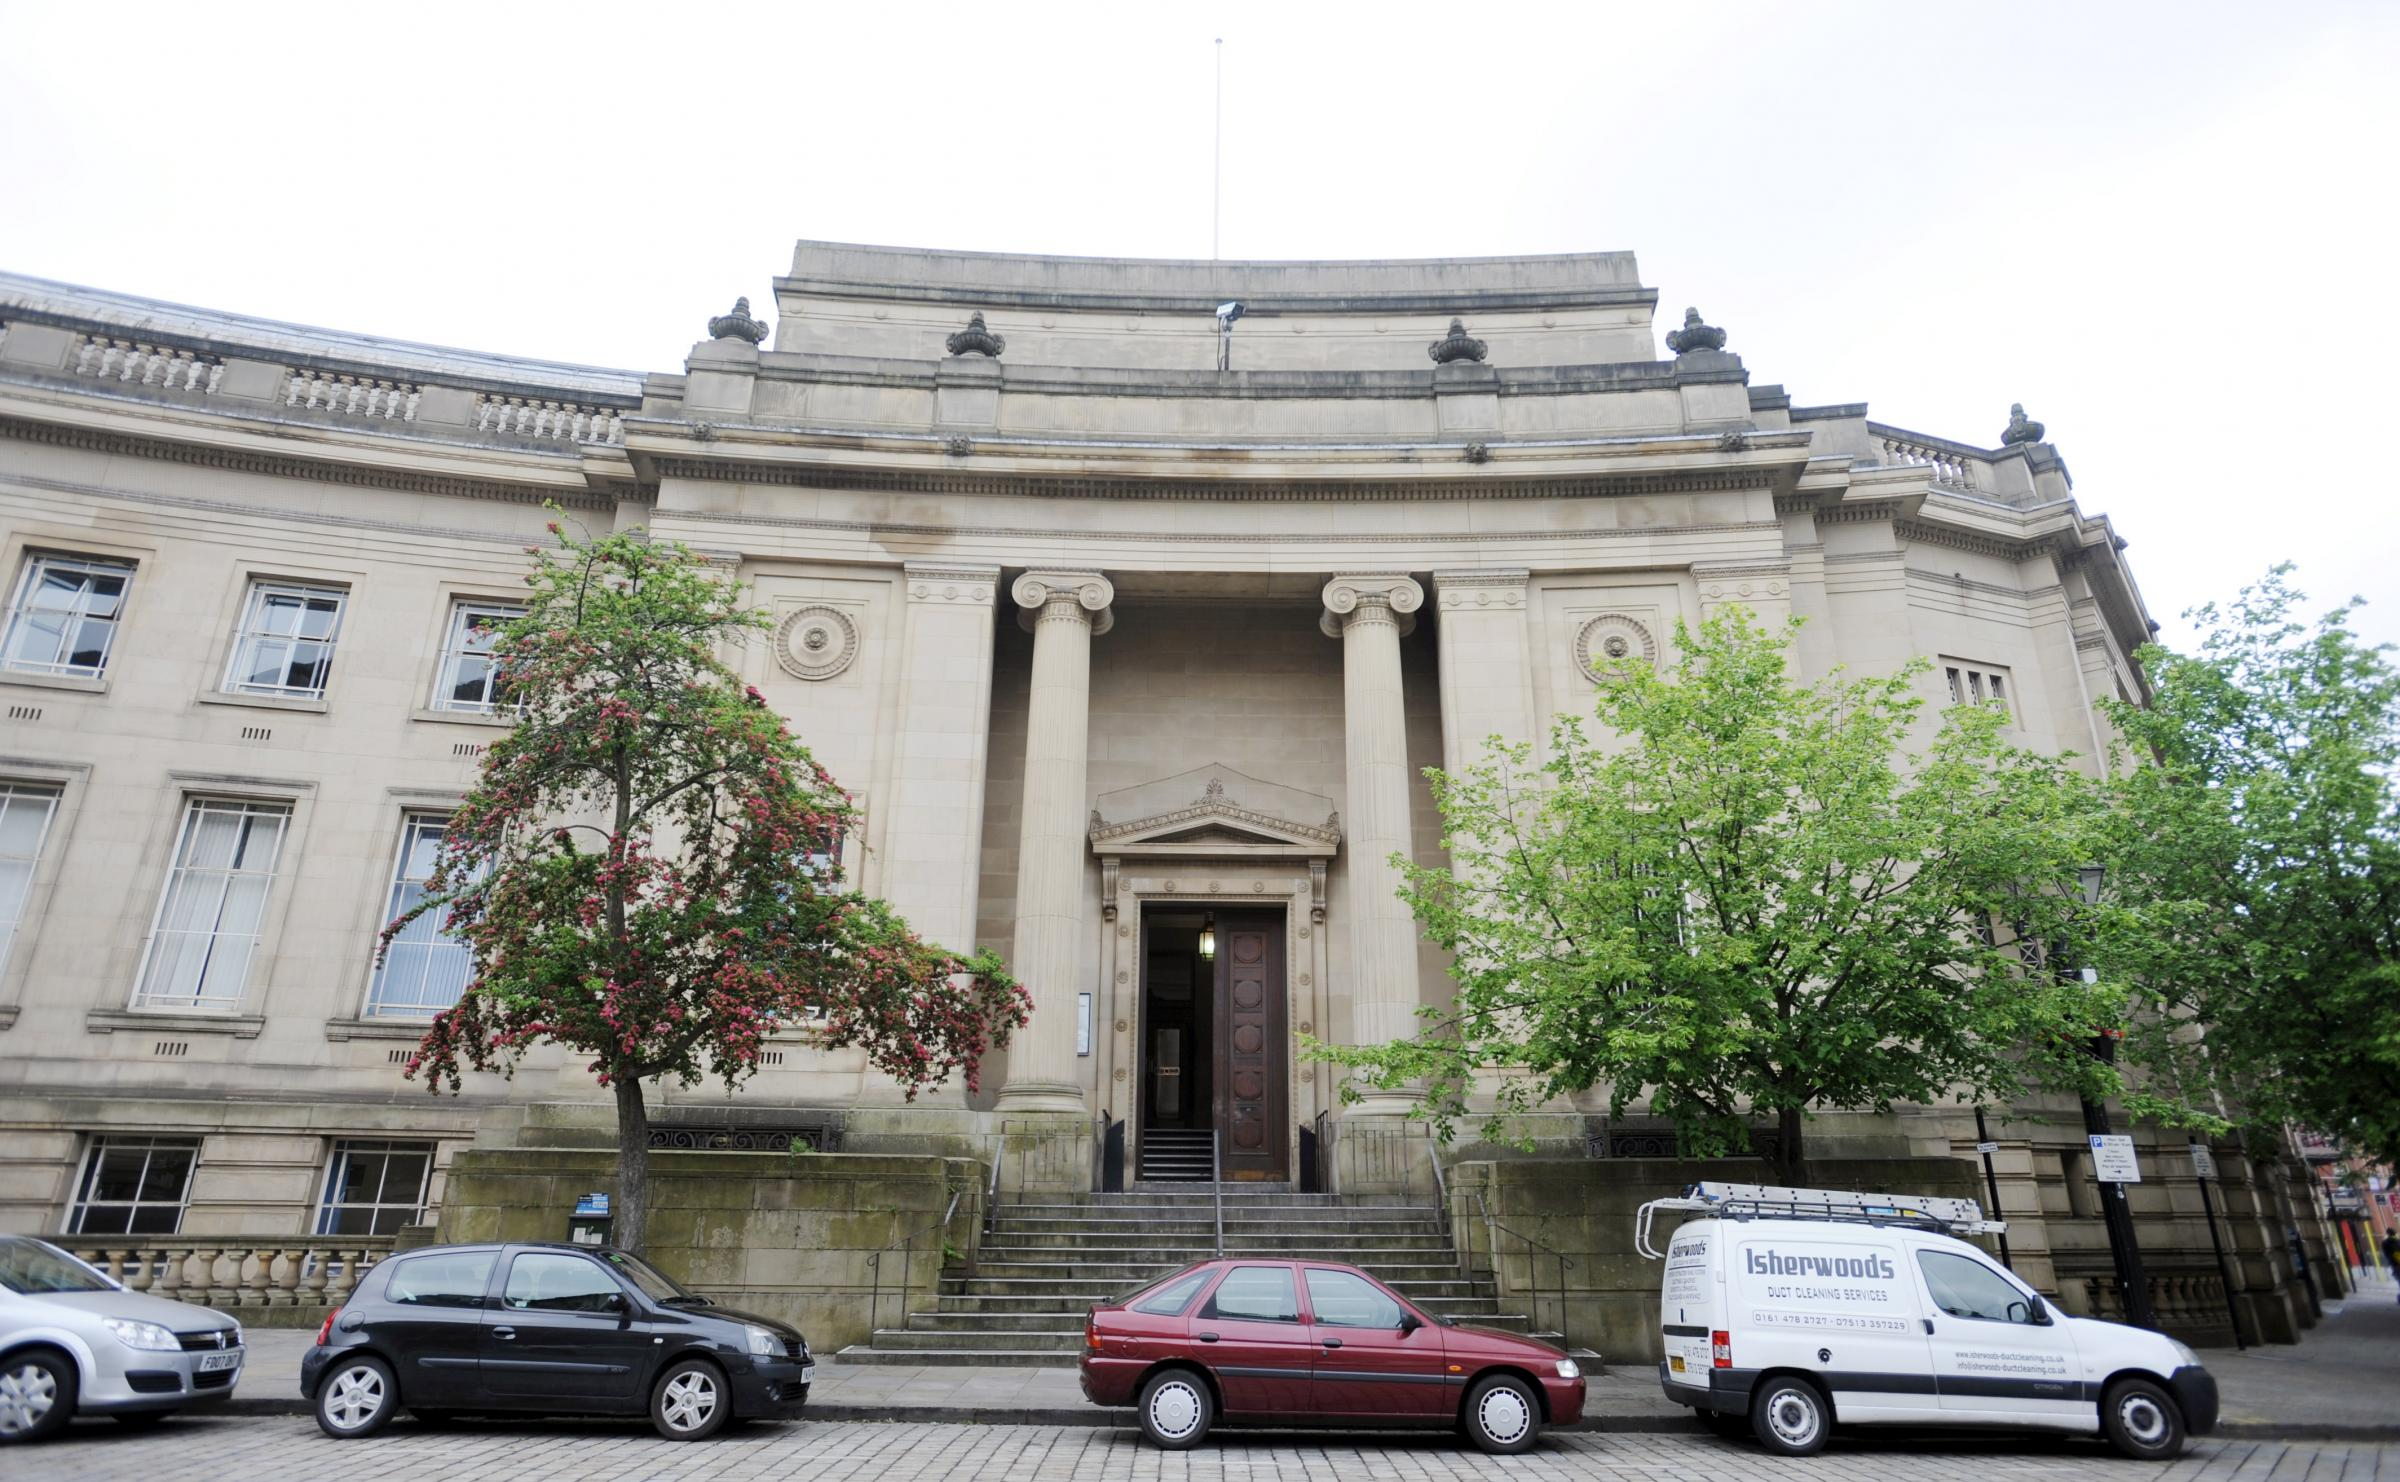 Bolton Magistrates' Court